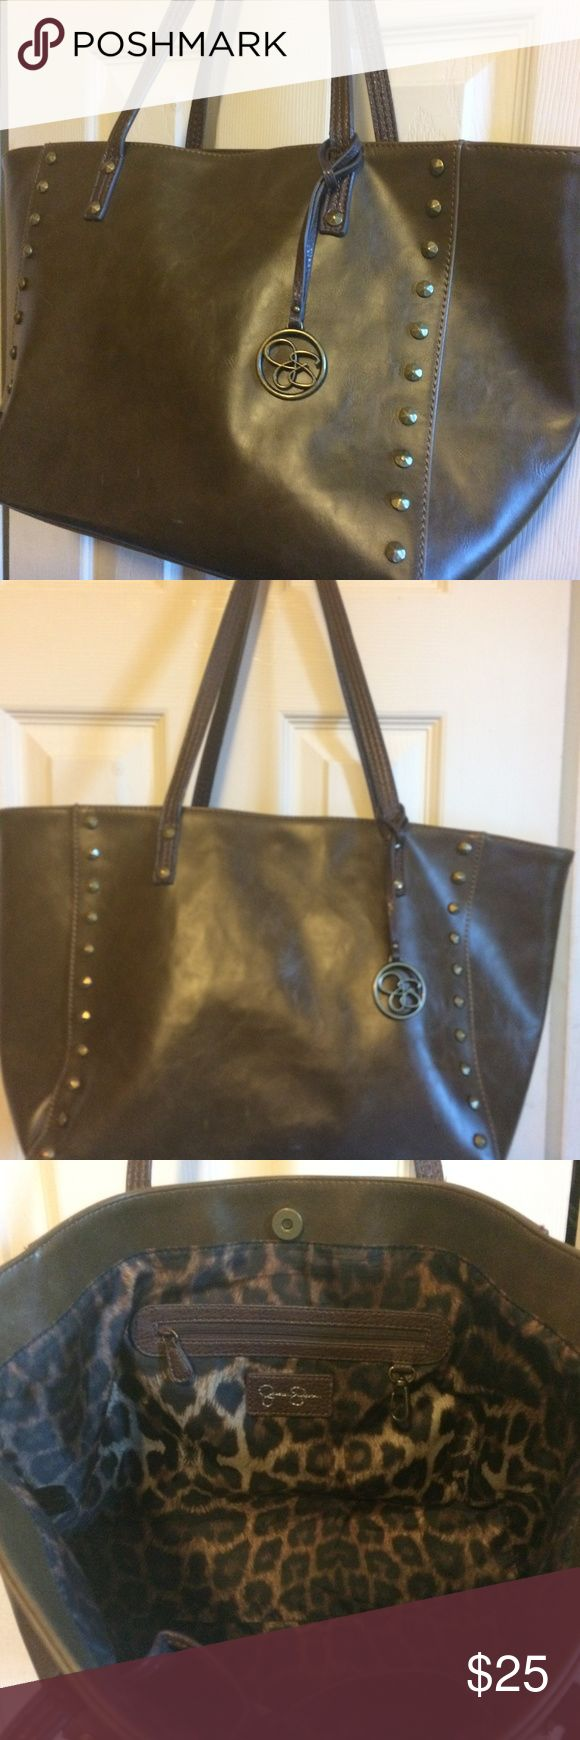 POCKETBOOK Jessica Simpson large tote. Never used, in great condition. Plenty of room Jessica Simpson Bags Totes